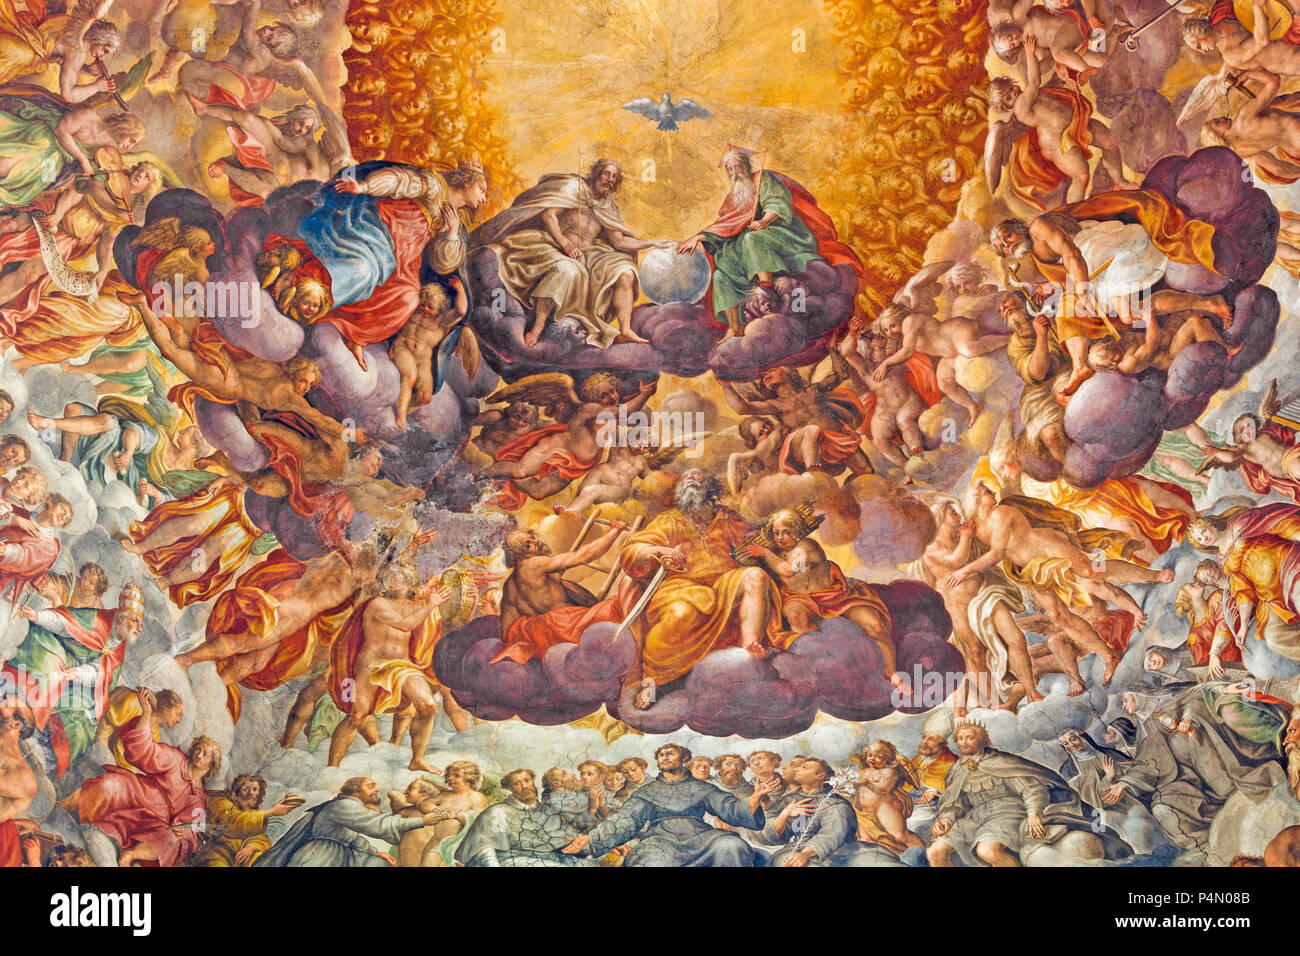 PARMA, ITALY - APRIL 16, 2018: Fresco of Holy Trinity and saints in the glory in cupola of Chiesa di Santa Maria del Quartiere by P. A. Bernabei. Stock Photo